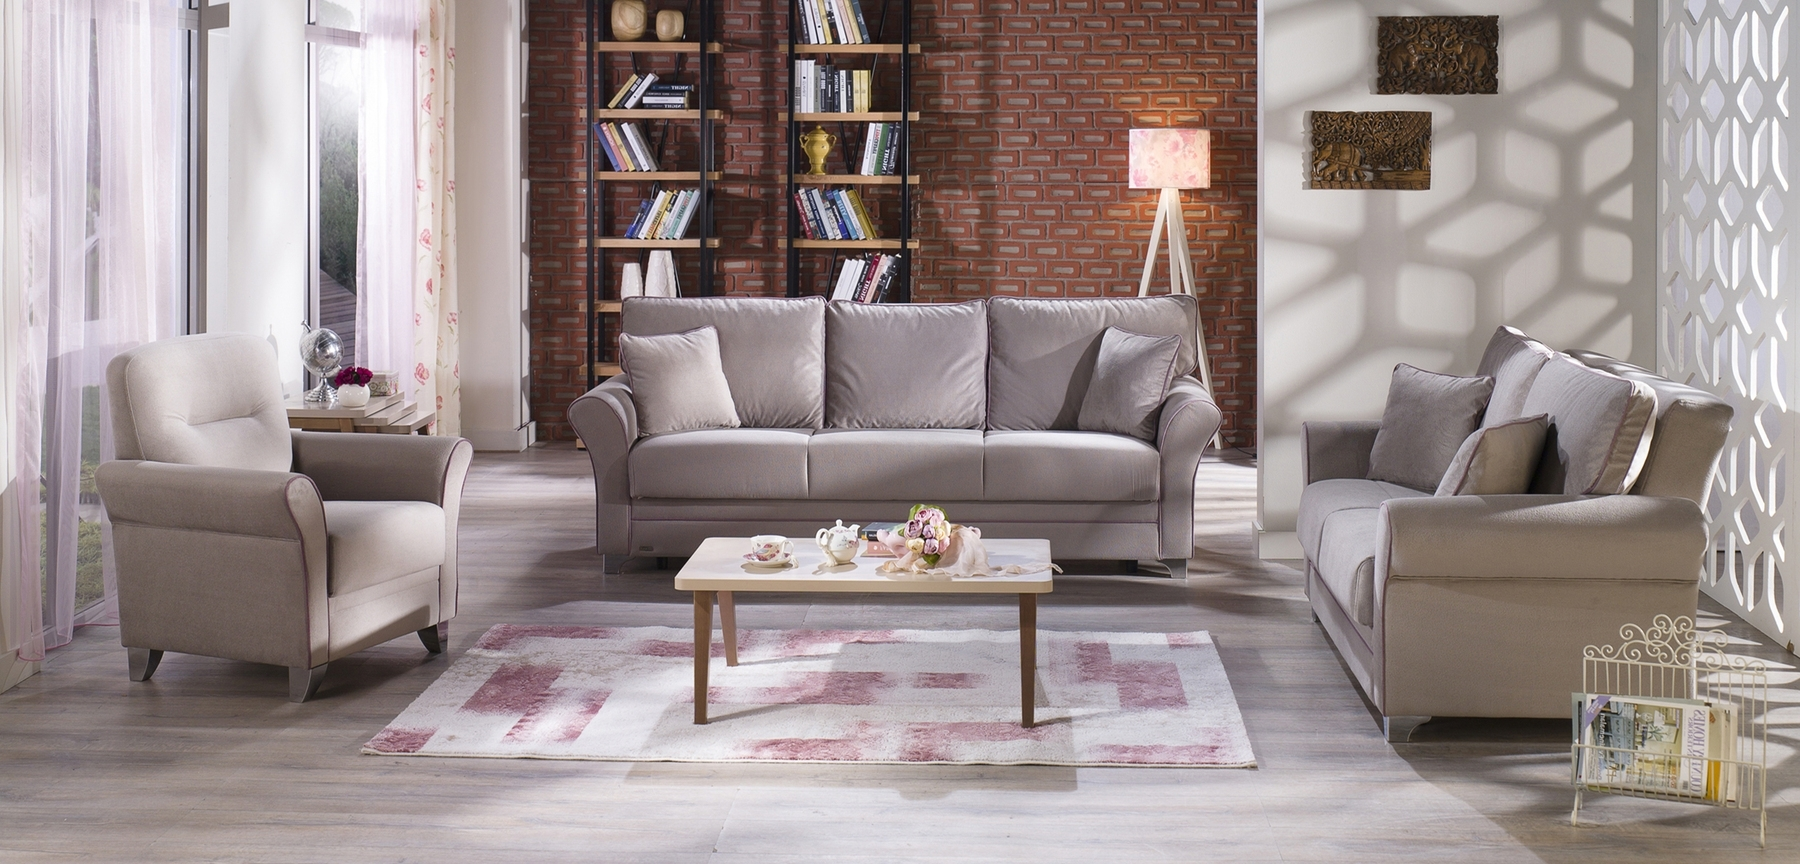 Fabric Sofas With Regard To Recent Padova Paris Gray Sofa Padova Sunset Furniture Fabric Sofas At (View 12 of 20)